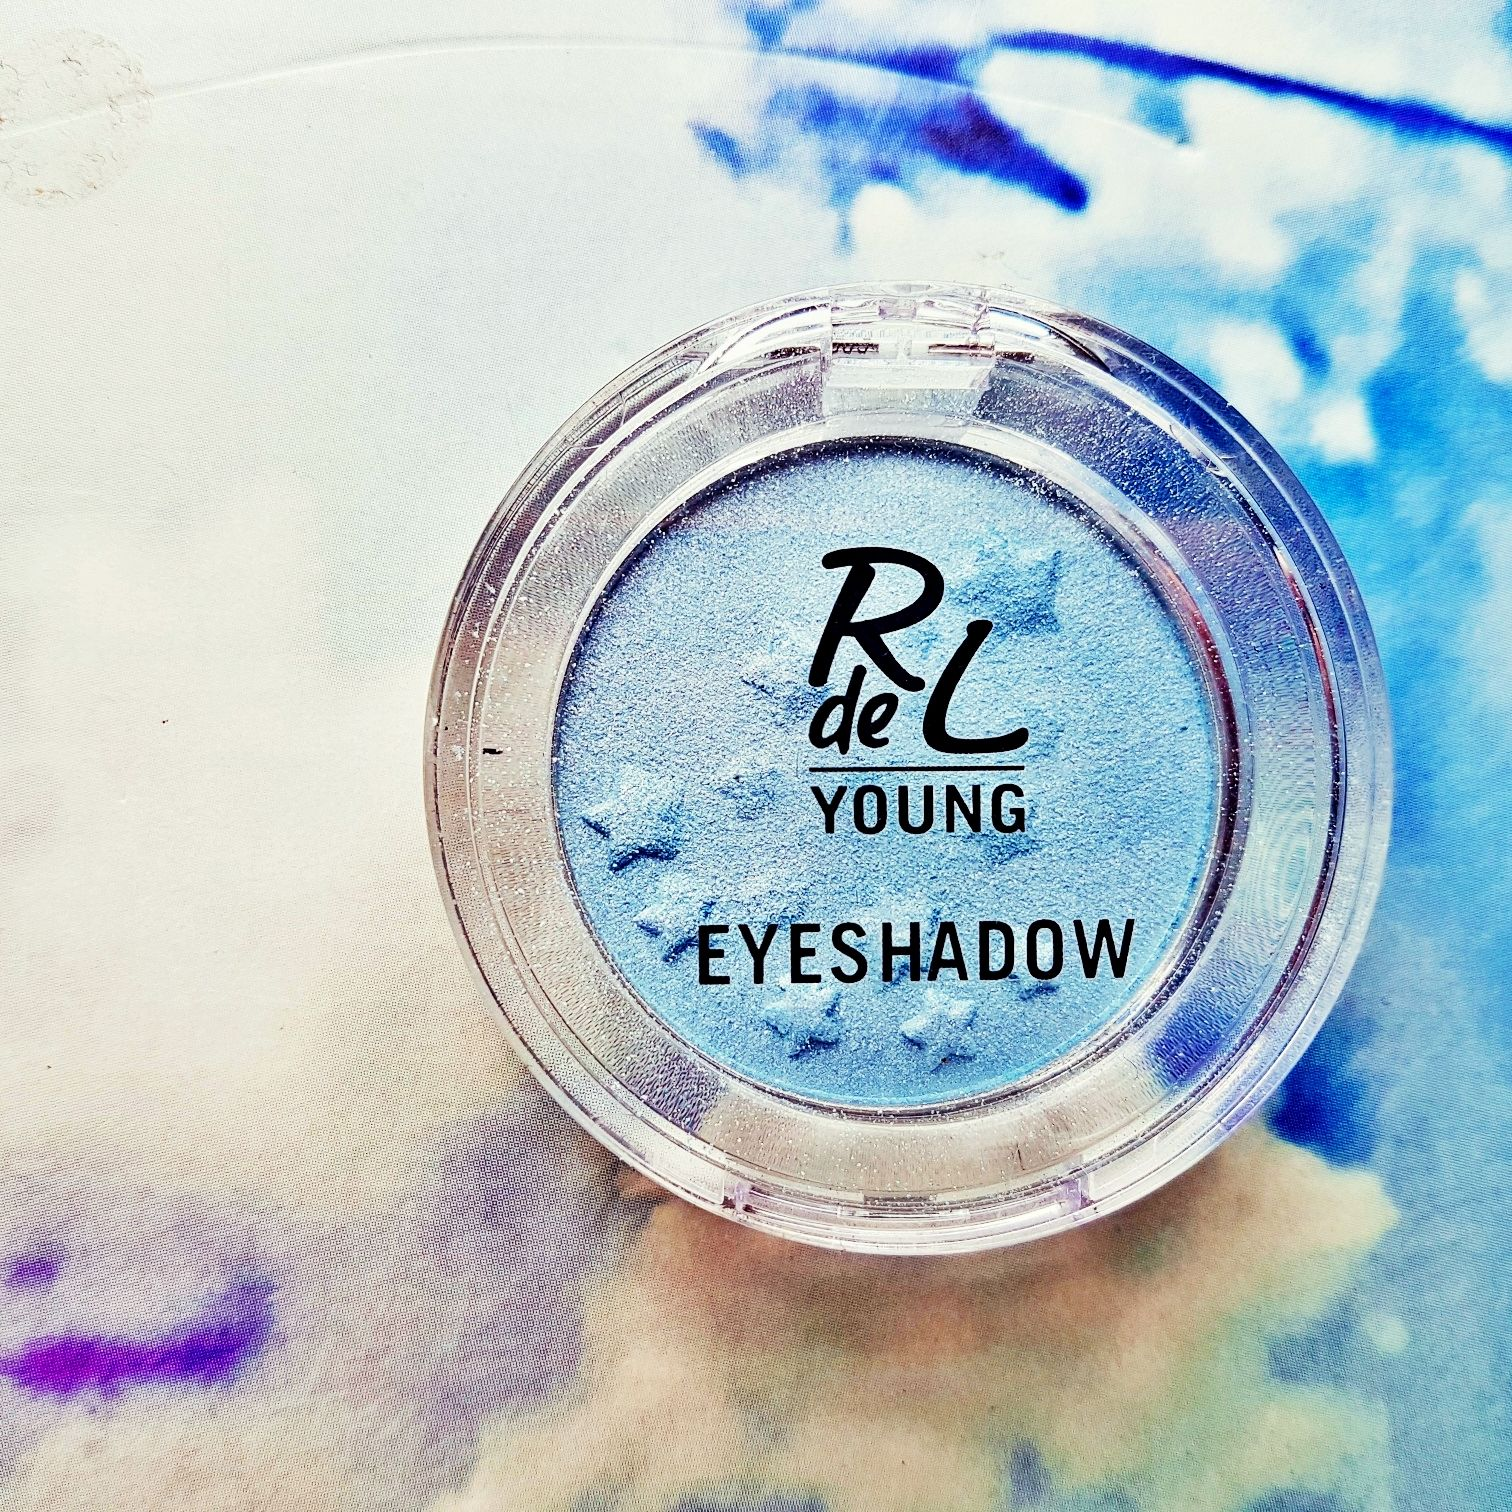 Rival de Loop Young Sky is the Limit Eyeshadow